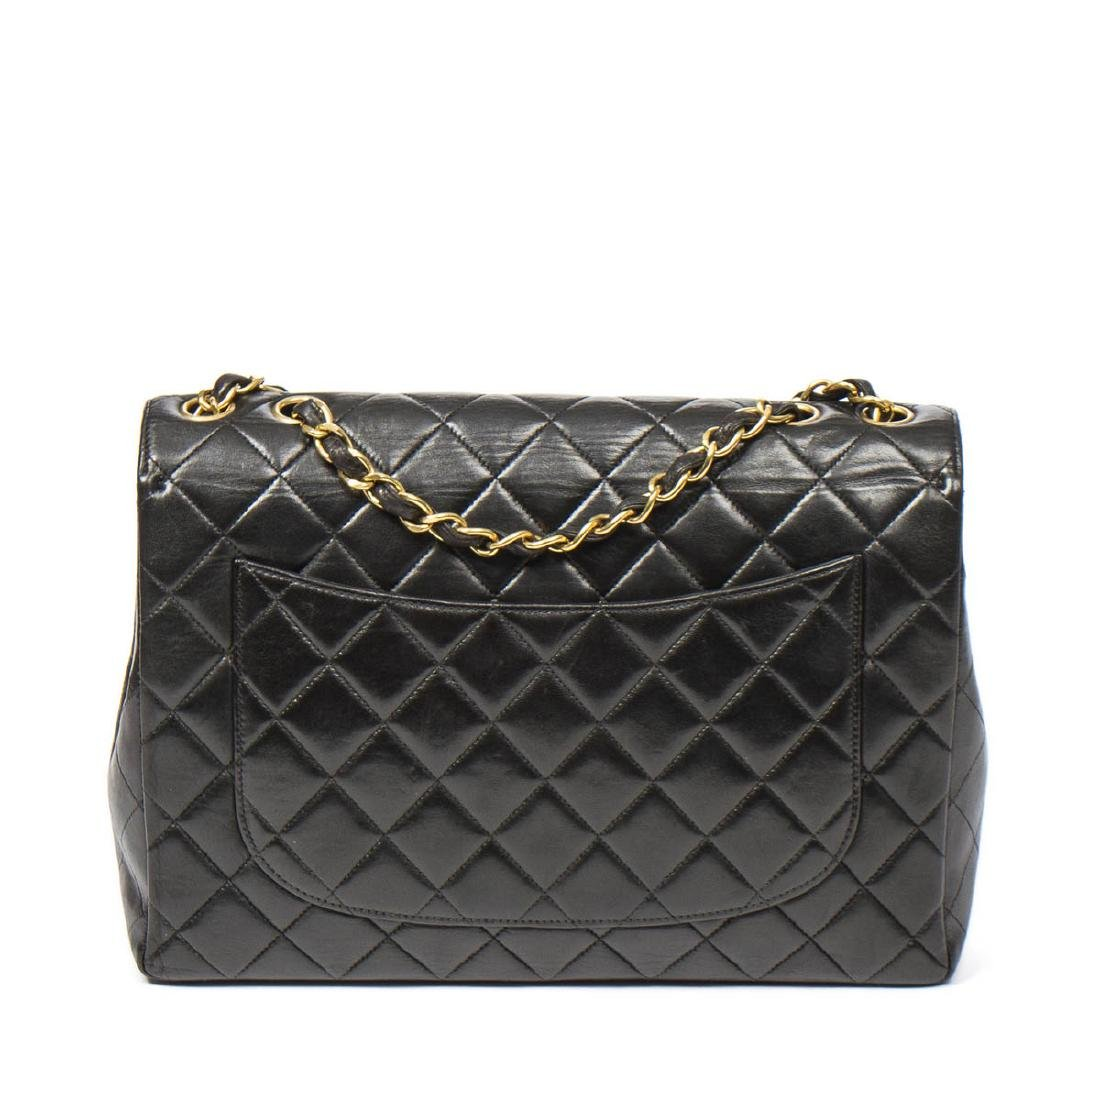 Chanel Maxi Flap in Black Quilted Leather - 5